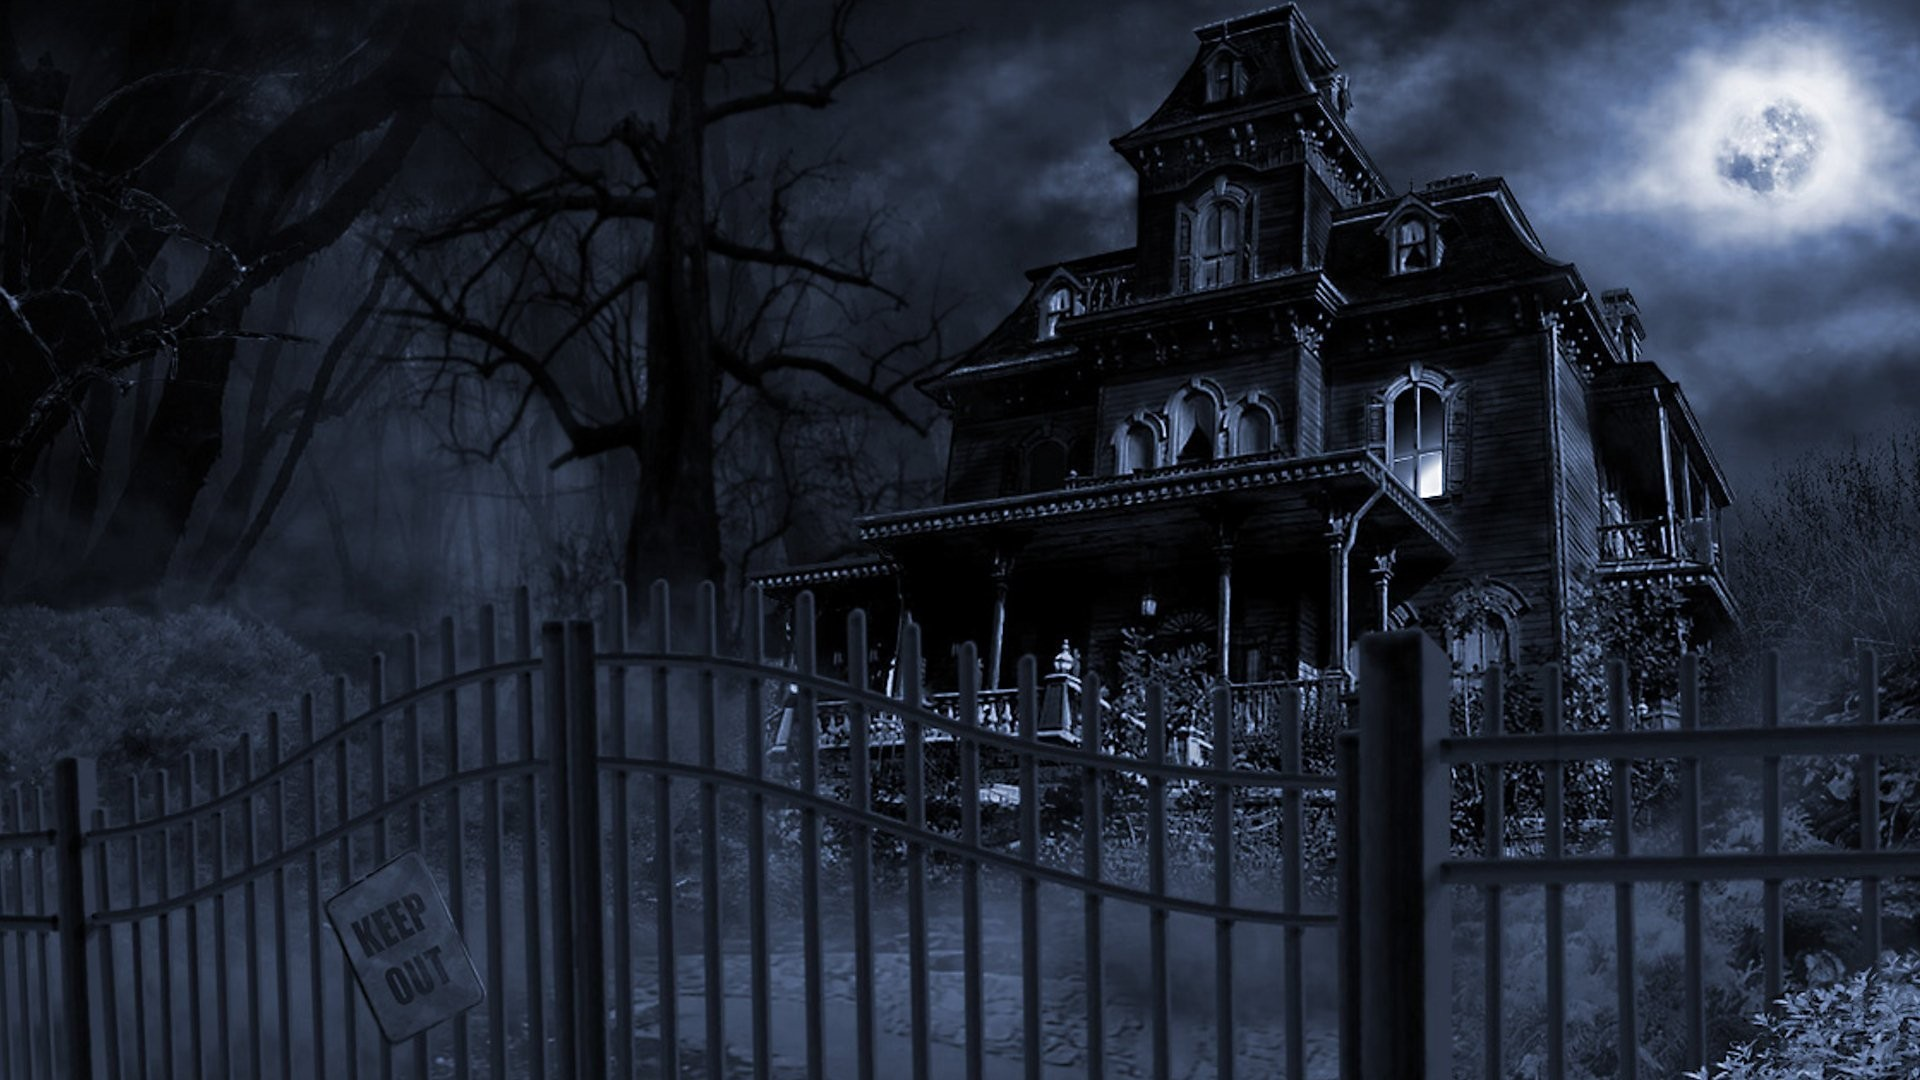 1920x1080 Check out our list of haunted Houses, Ghost Tours, Spooky Story Times and  other Scary Attractions in Dallas/Fort Worth!